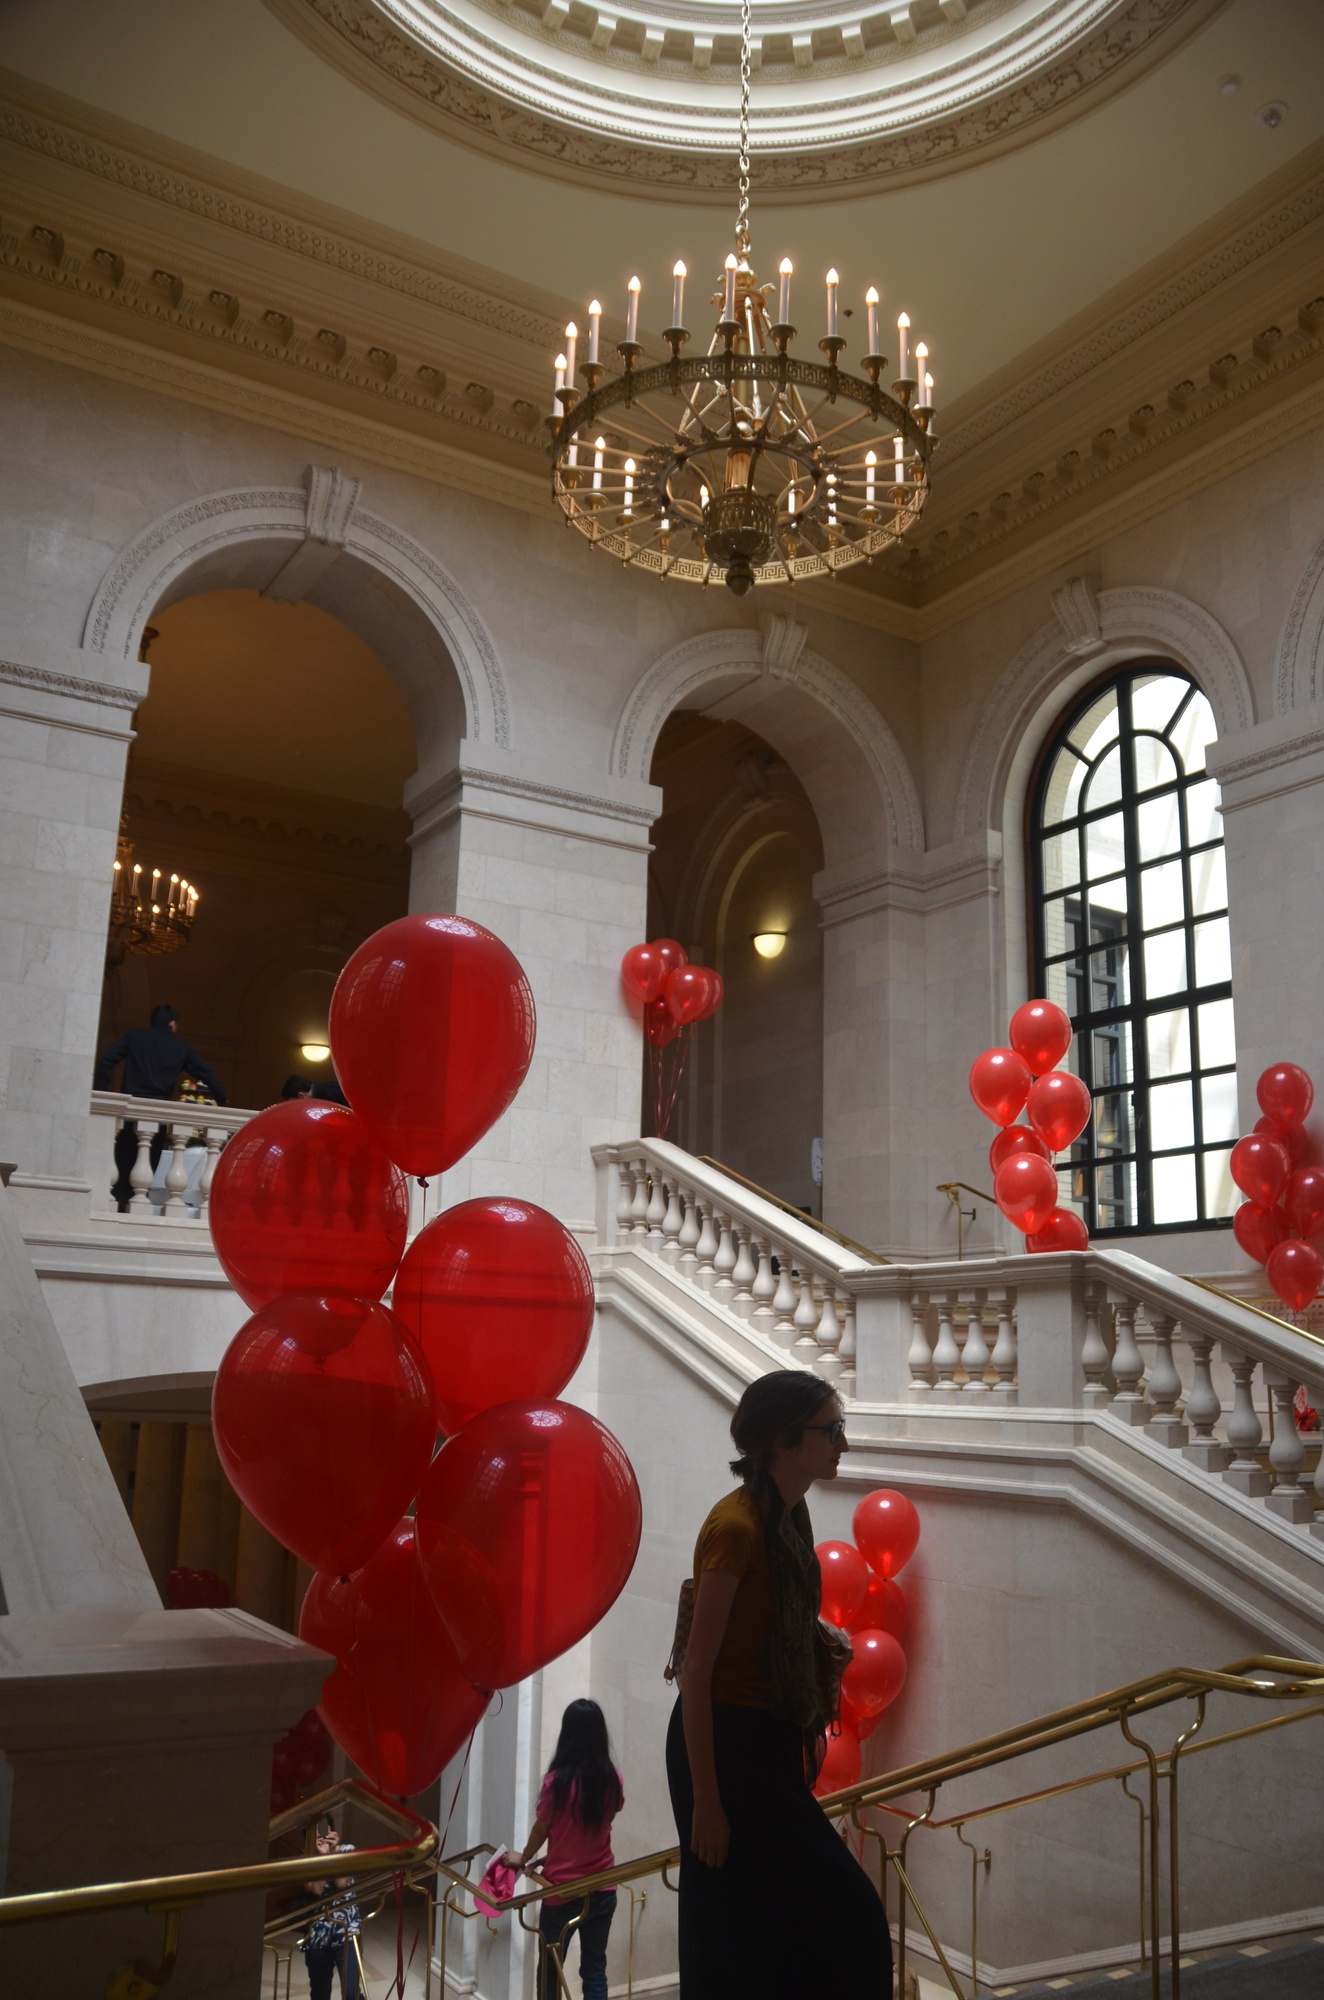 Visitors walk among red balloons at Widener Library on Friday. Administrators commemorated the 100th anniversary of the library's founding with a celebration.